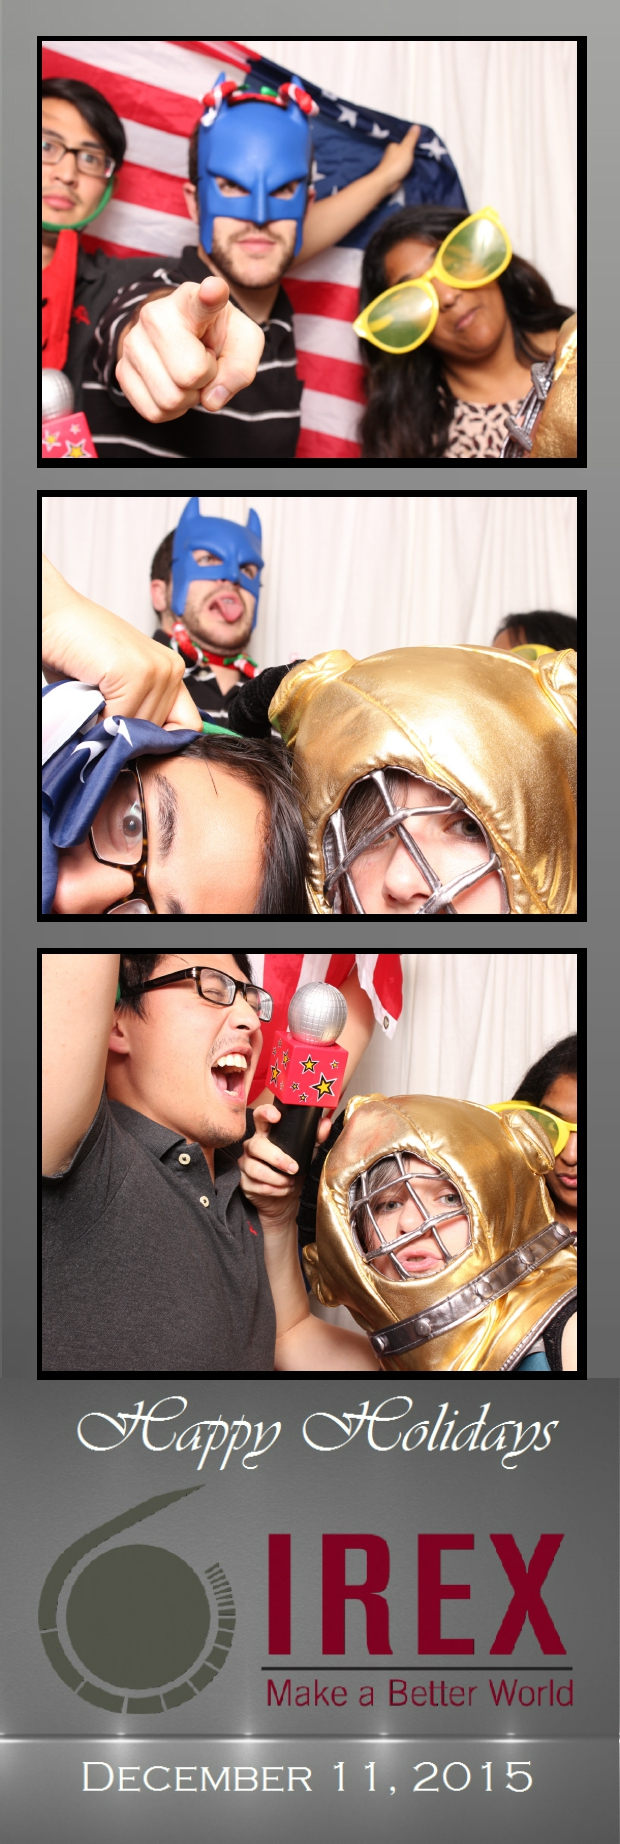 Guest House Events Photo Booth Strips IREX (100).jpg